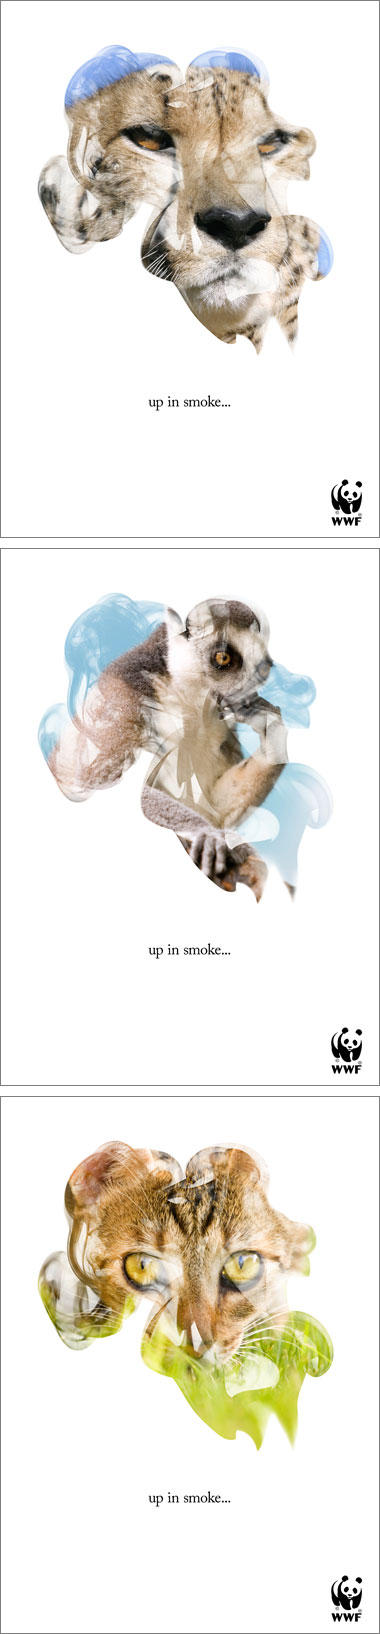 Up in smoke campaign